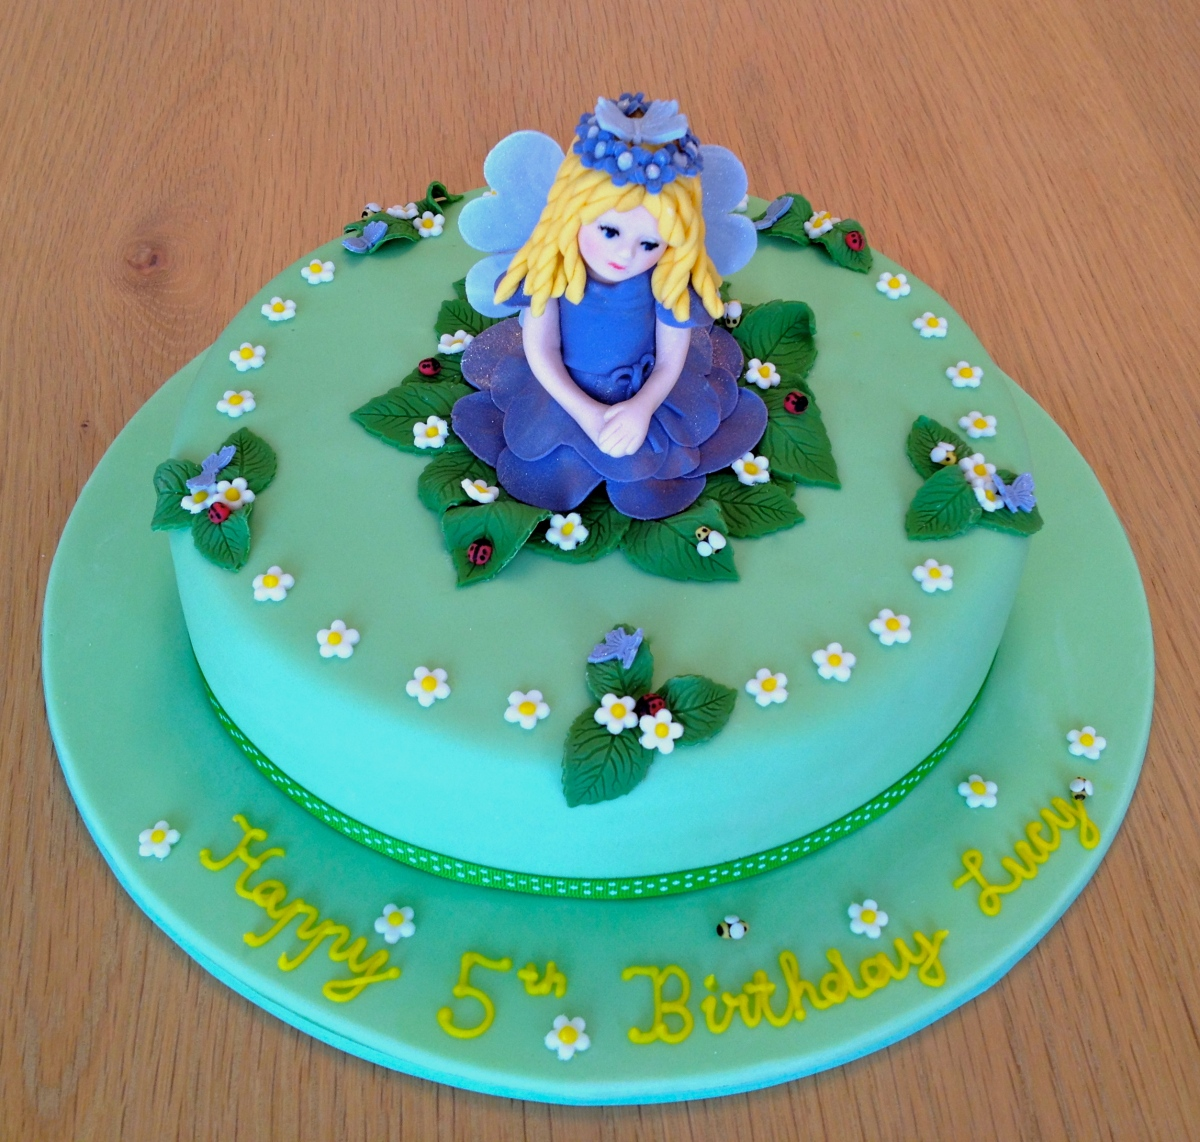 Blue Fairy Cake Front View